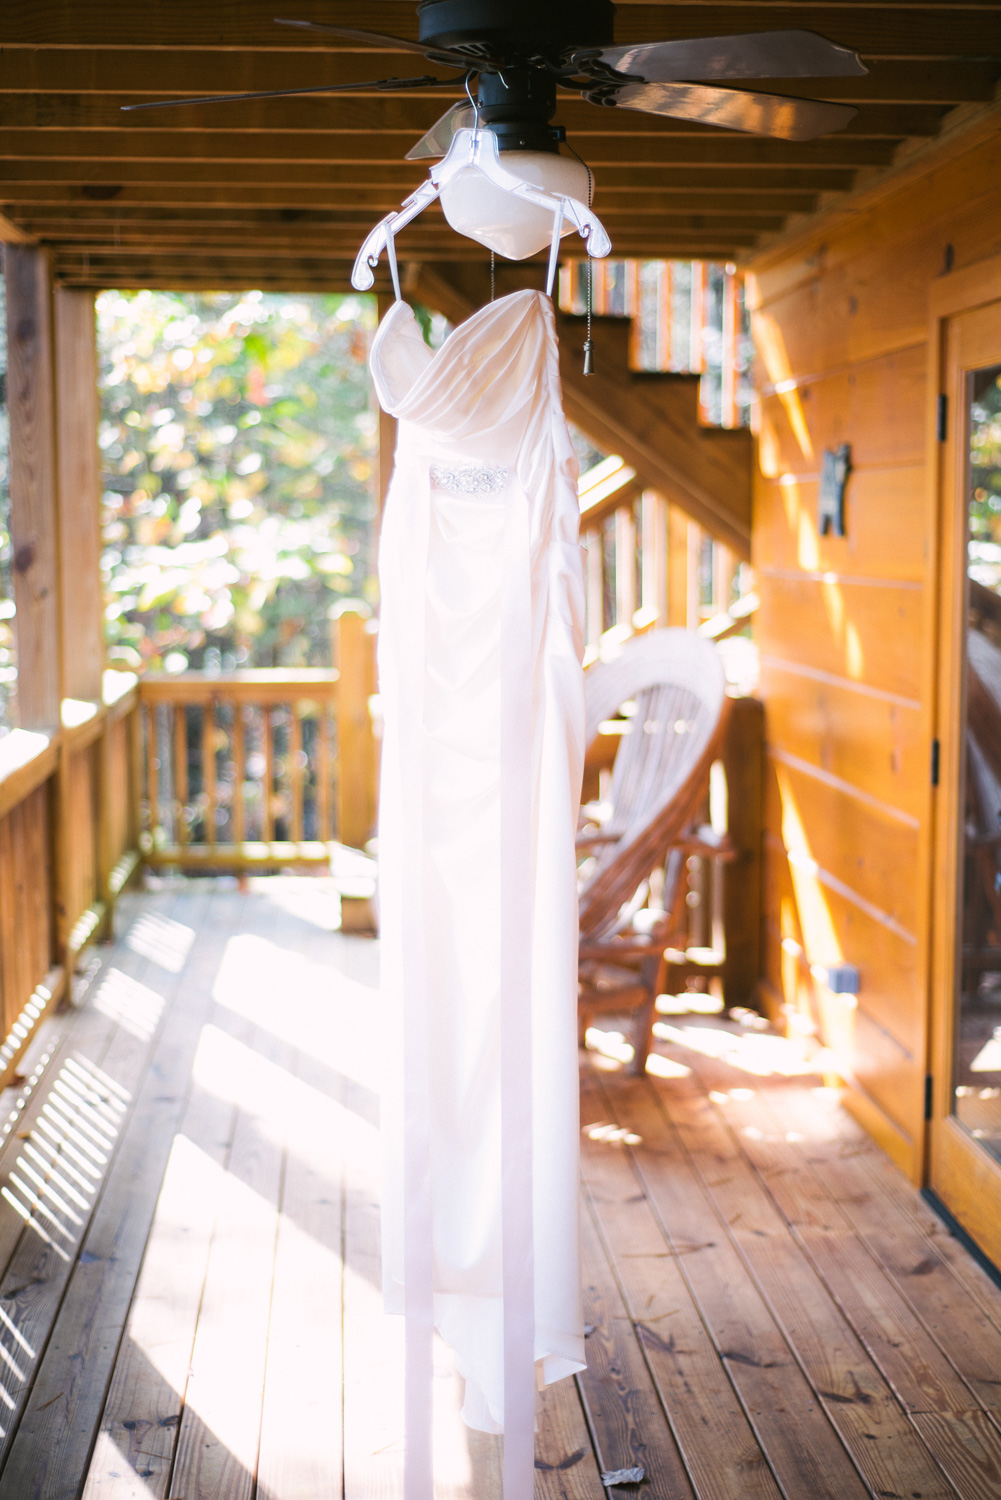 Elijay Wedding Photographer | LeahAndMark & Co. | North Georgia Mountains